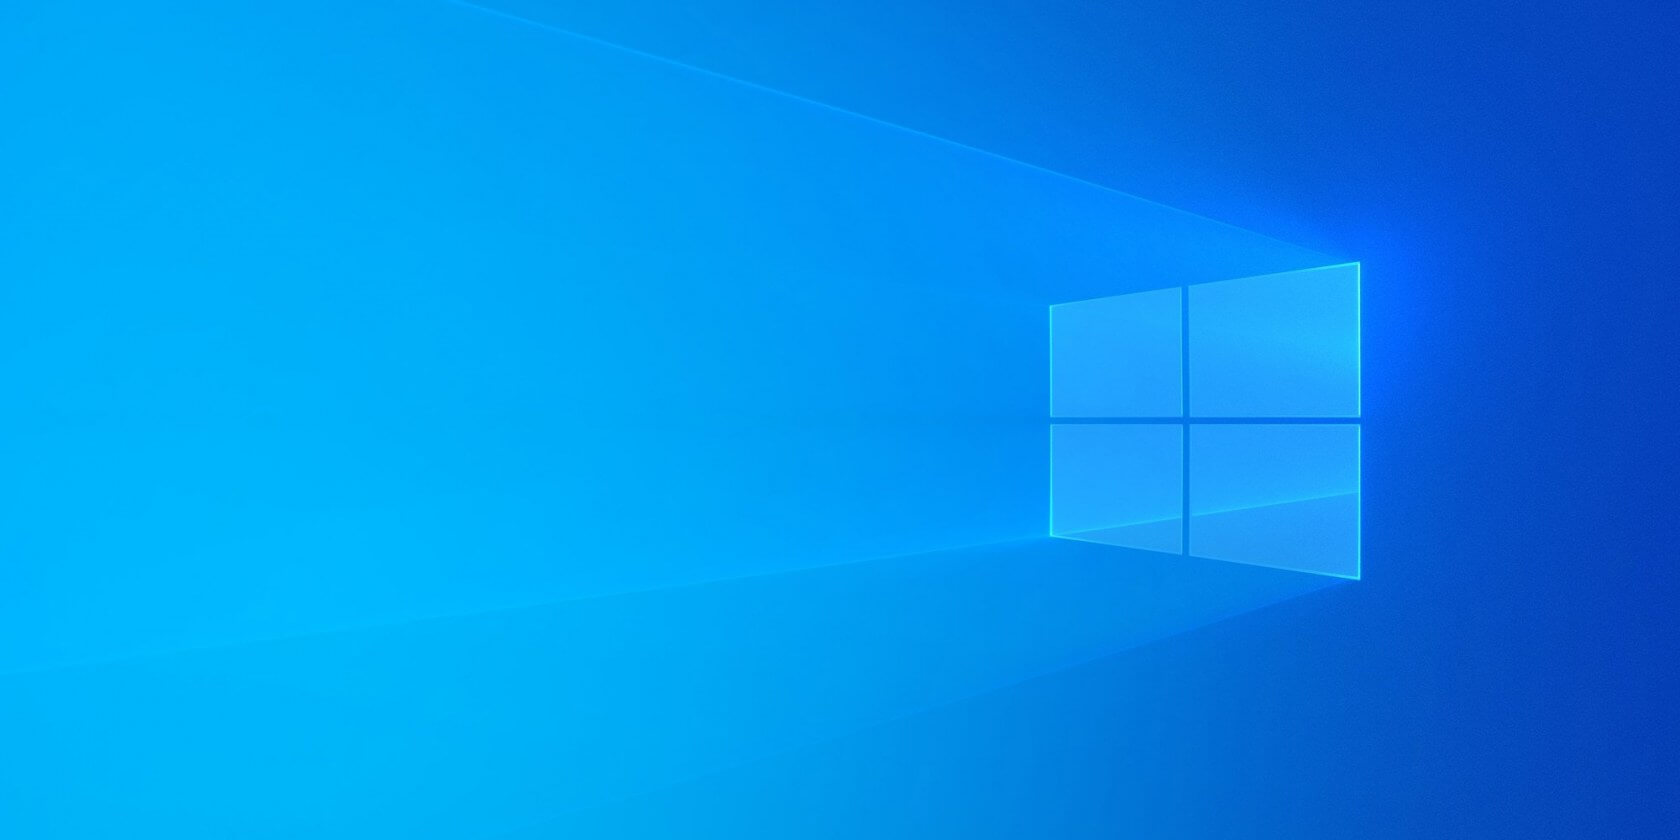 Microsoft adds 'variable refresh rate' setting to Windows 10 with version 1903